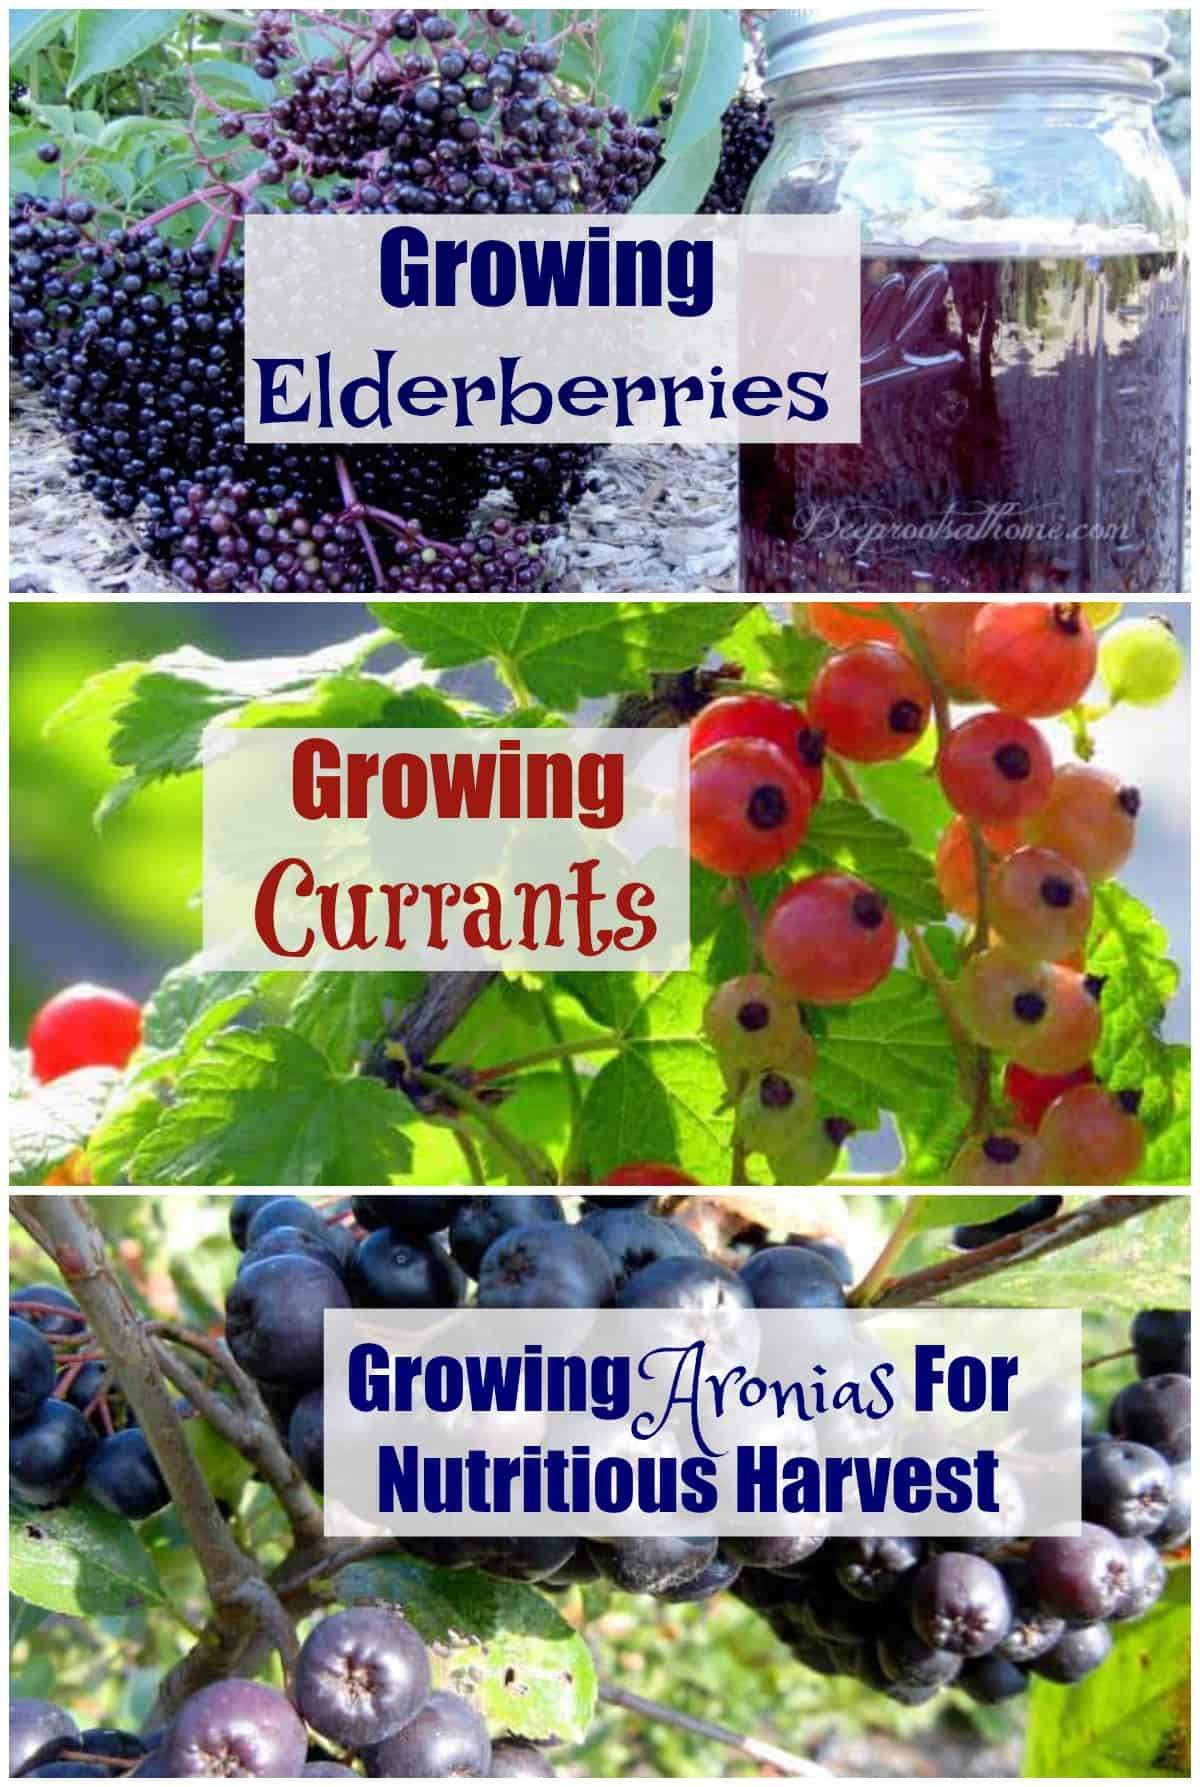 Growing Aronias, Elderberries, and Currants For Harvest. All three beautiful fruits.